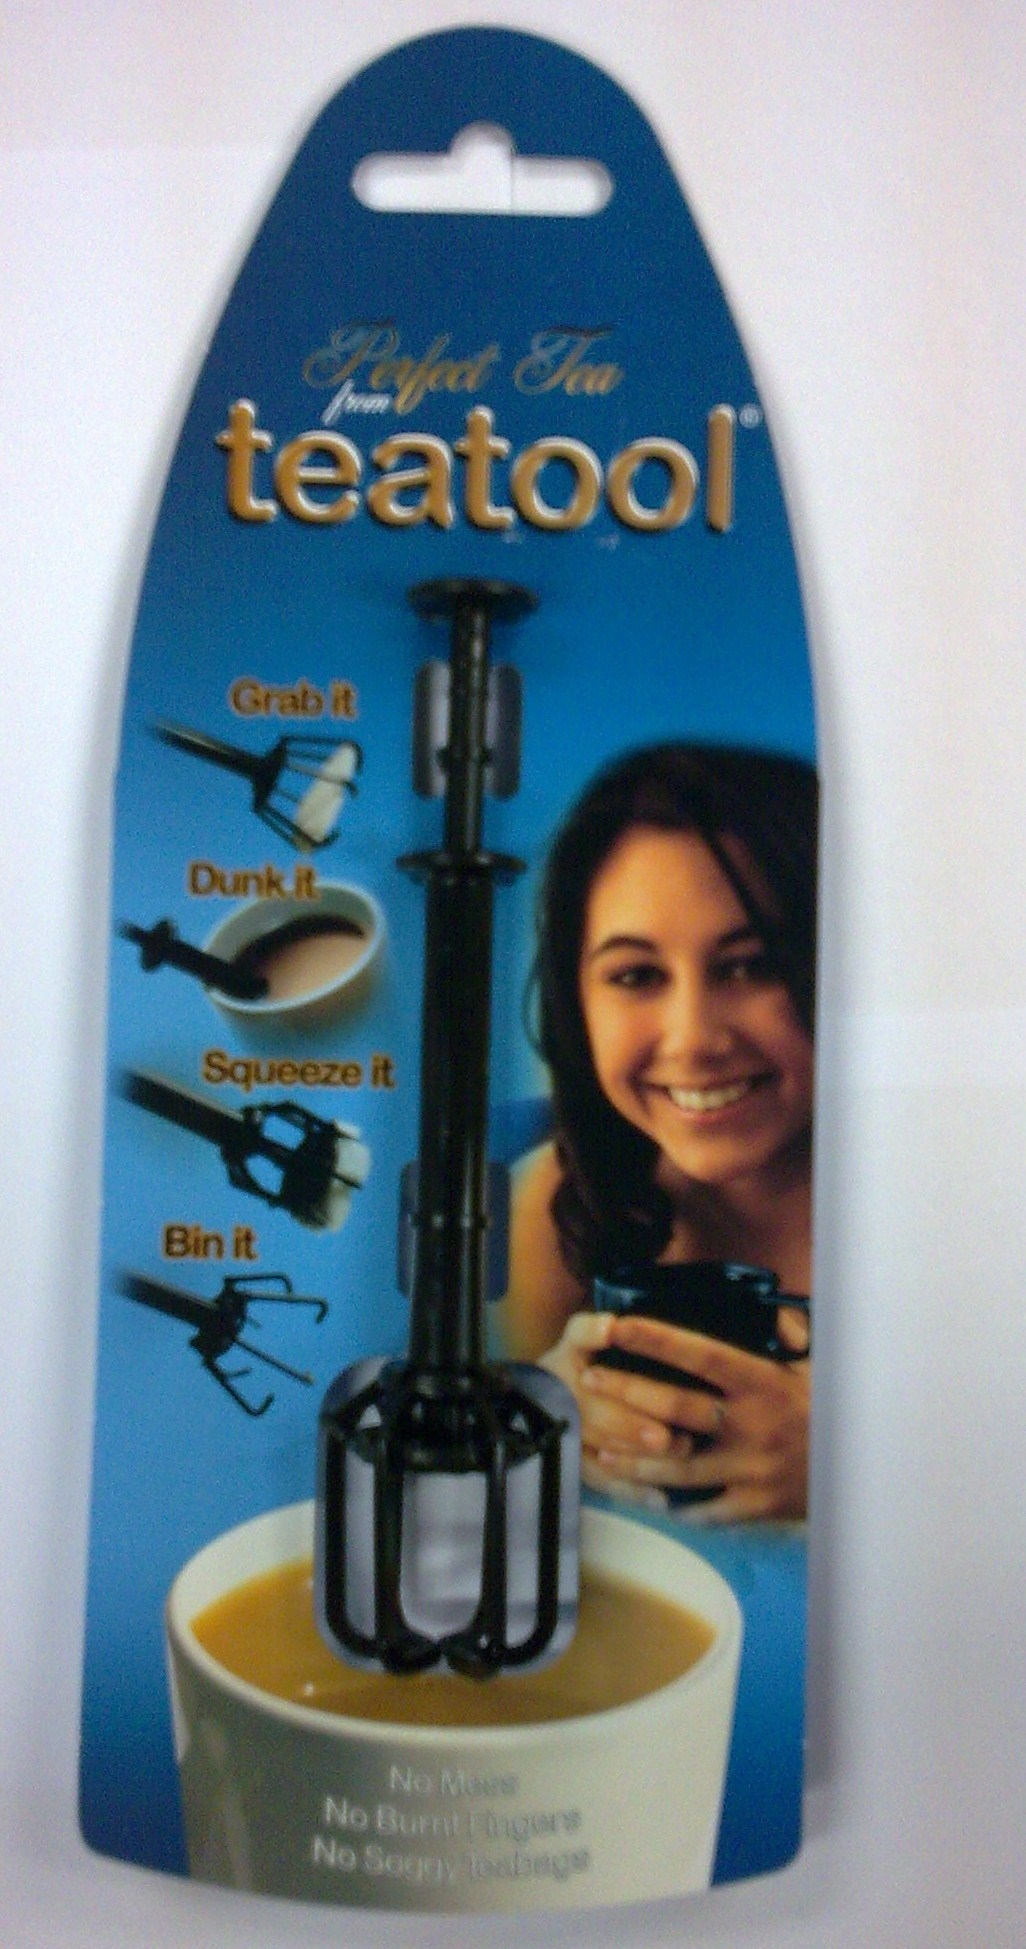 Teatool front